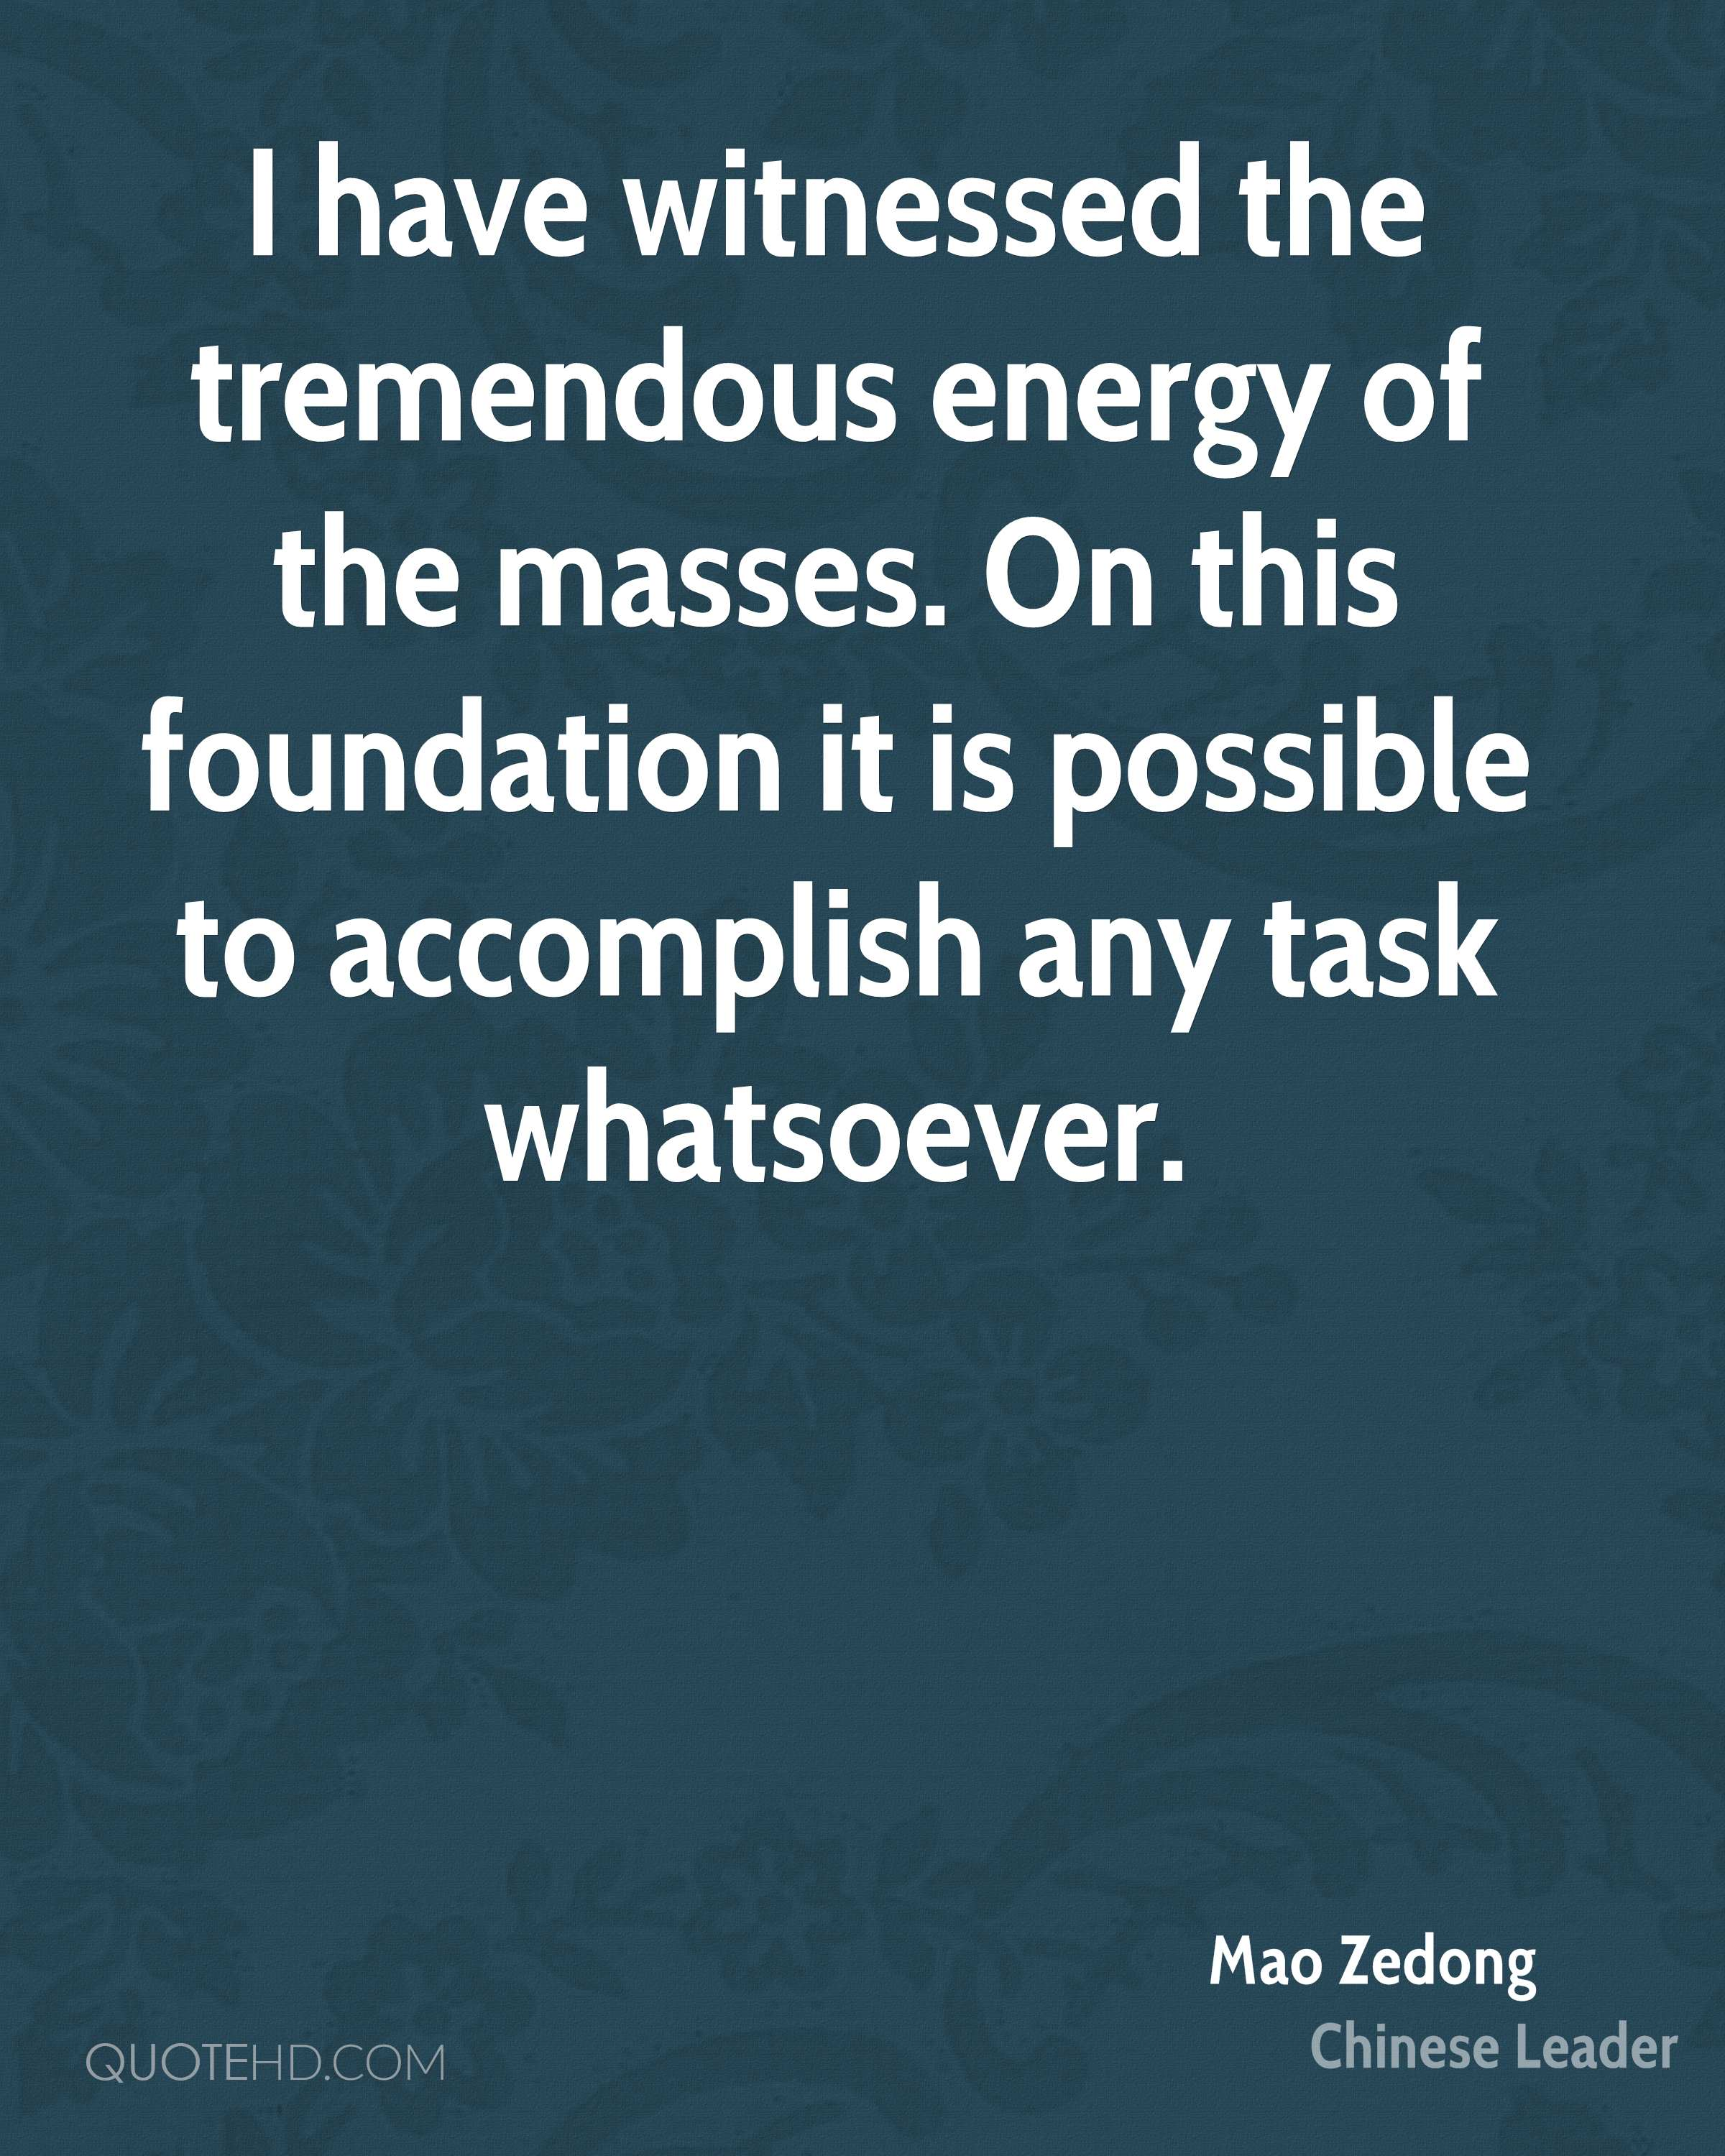 I have witnessed the tremendous energy of the masses. On this foundation it is possible to accomplish any task whatsoever.